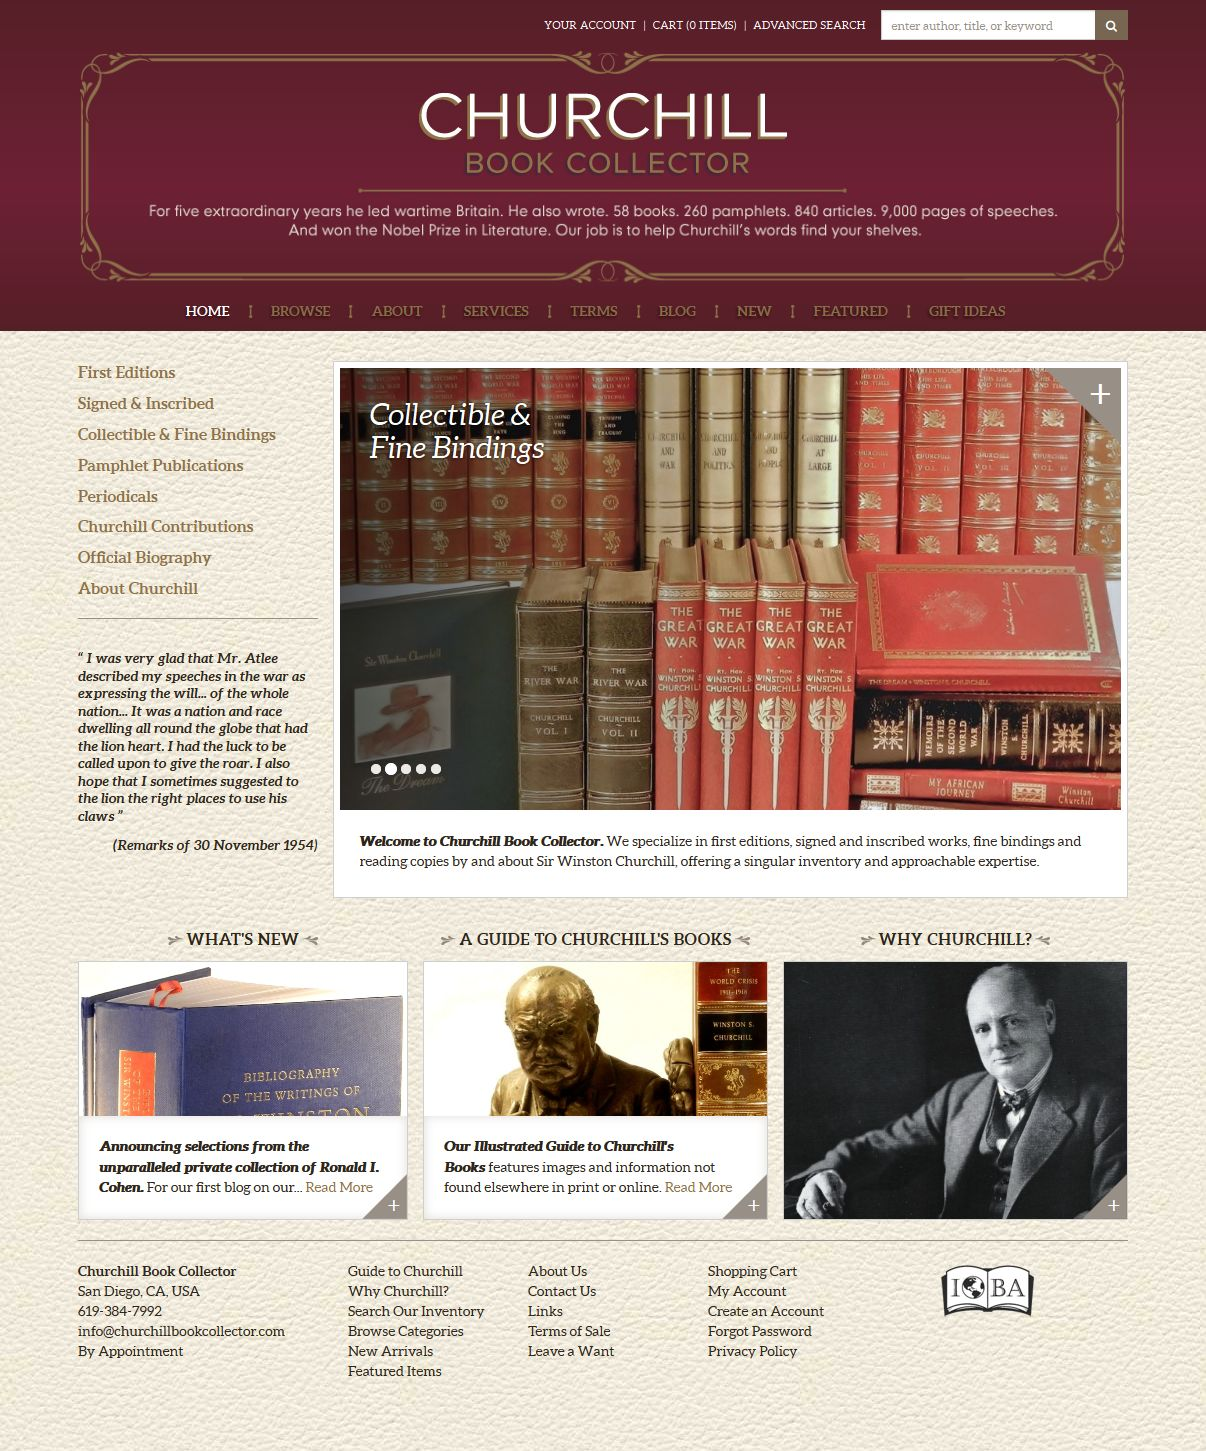 Churchill Book Collector